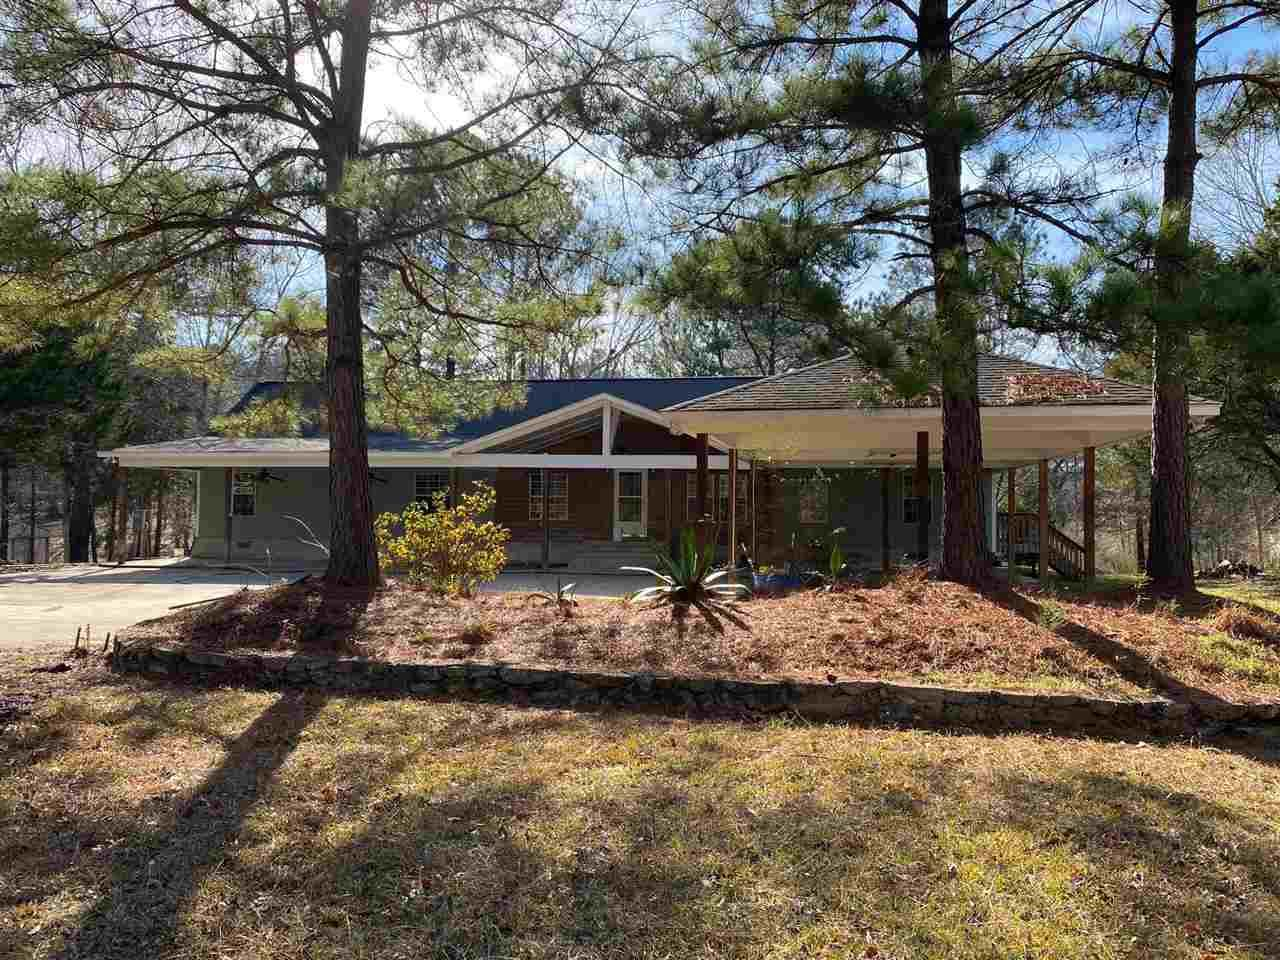 266 GREEN HILL RD, Florence, MS 39073 - MLS#: 337693